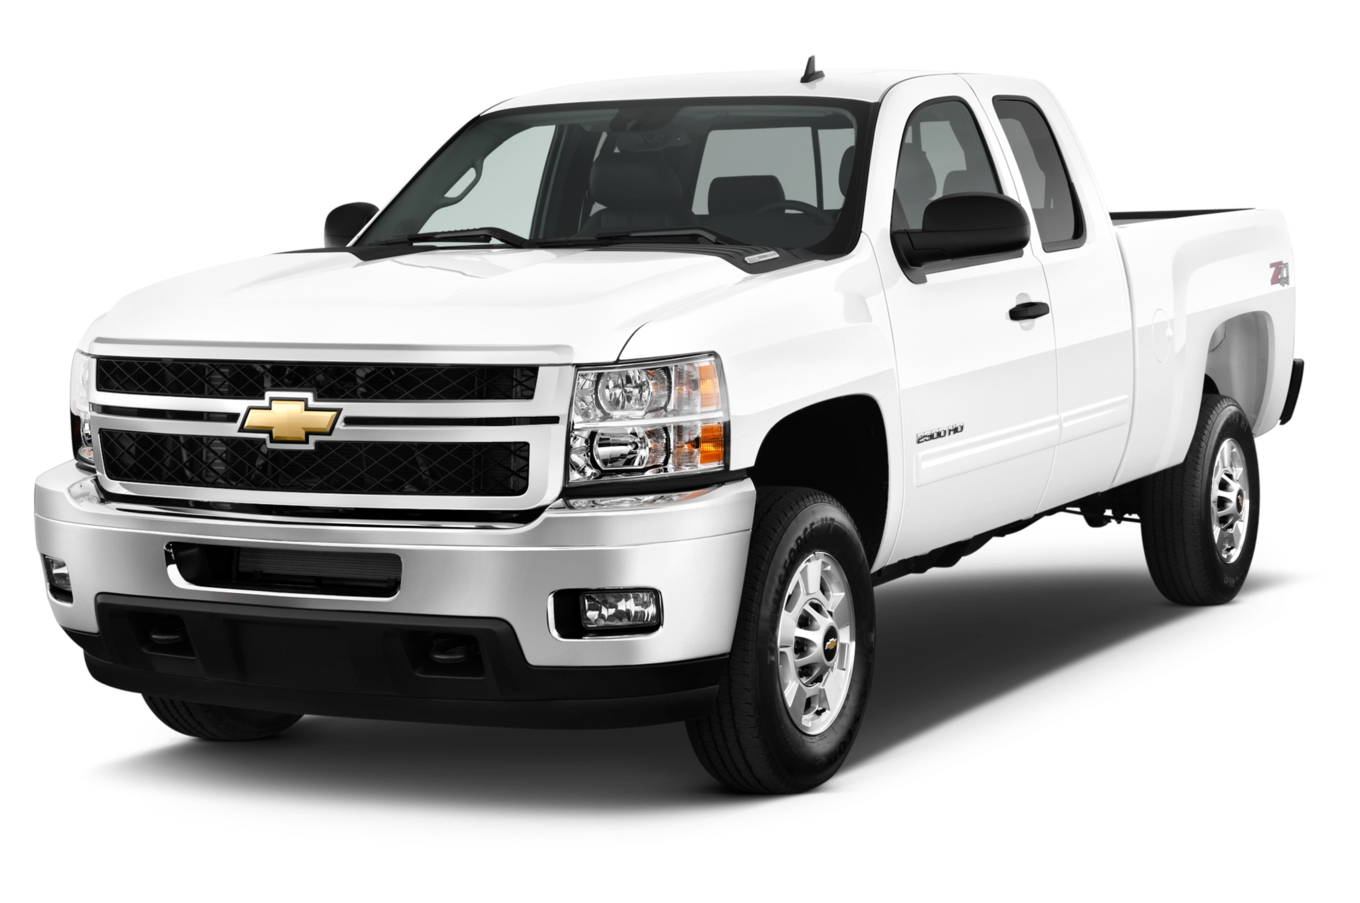 The 2013 Chevrolet Silverado 2500hd Is Offered In Regular Cab Extended Cab Or Crew Cab Body Styles With A Choic Chevrolet Chevrolet Silverado Sport Chevrolet